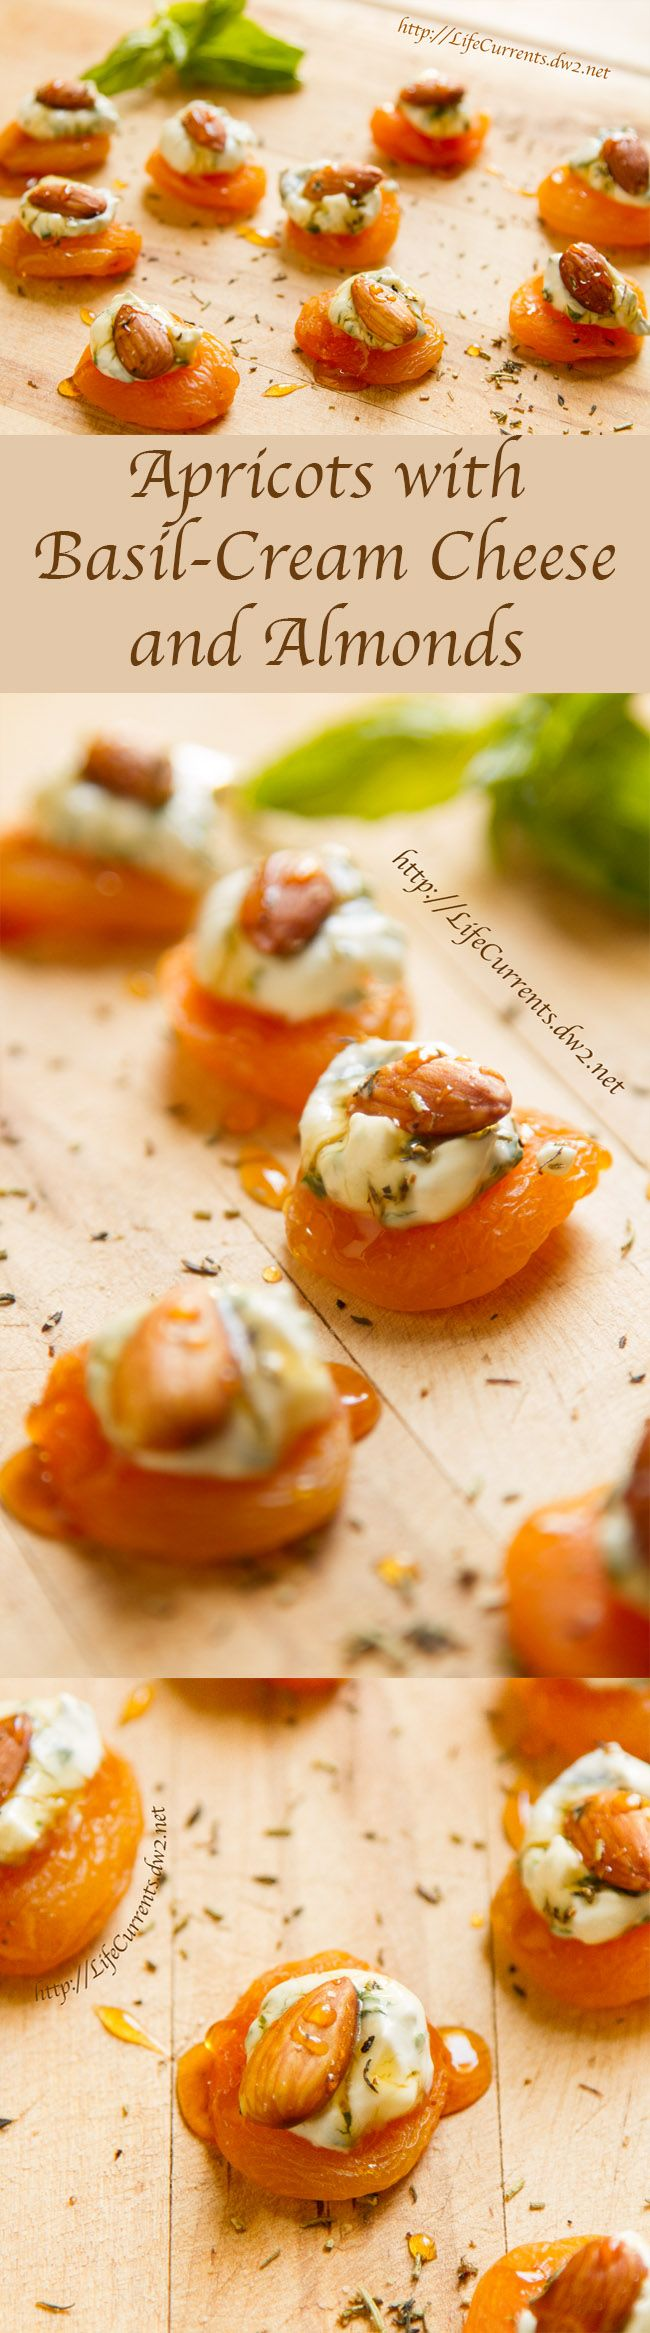 Apricots with Basil-Cream Cheese and Almonds: an awesome appetizer with a little sweetness that's welcome at any Valentine's Day celebration, date night, or romantic dinner